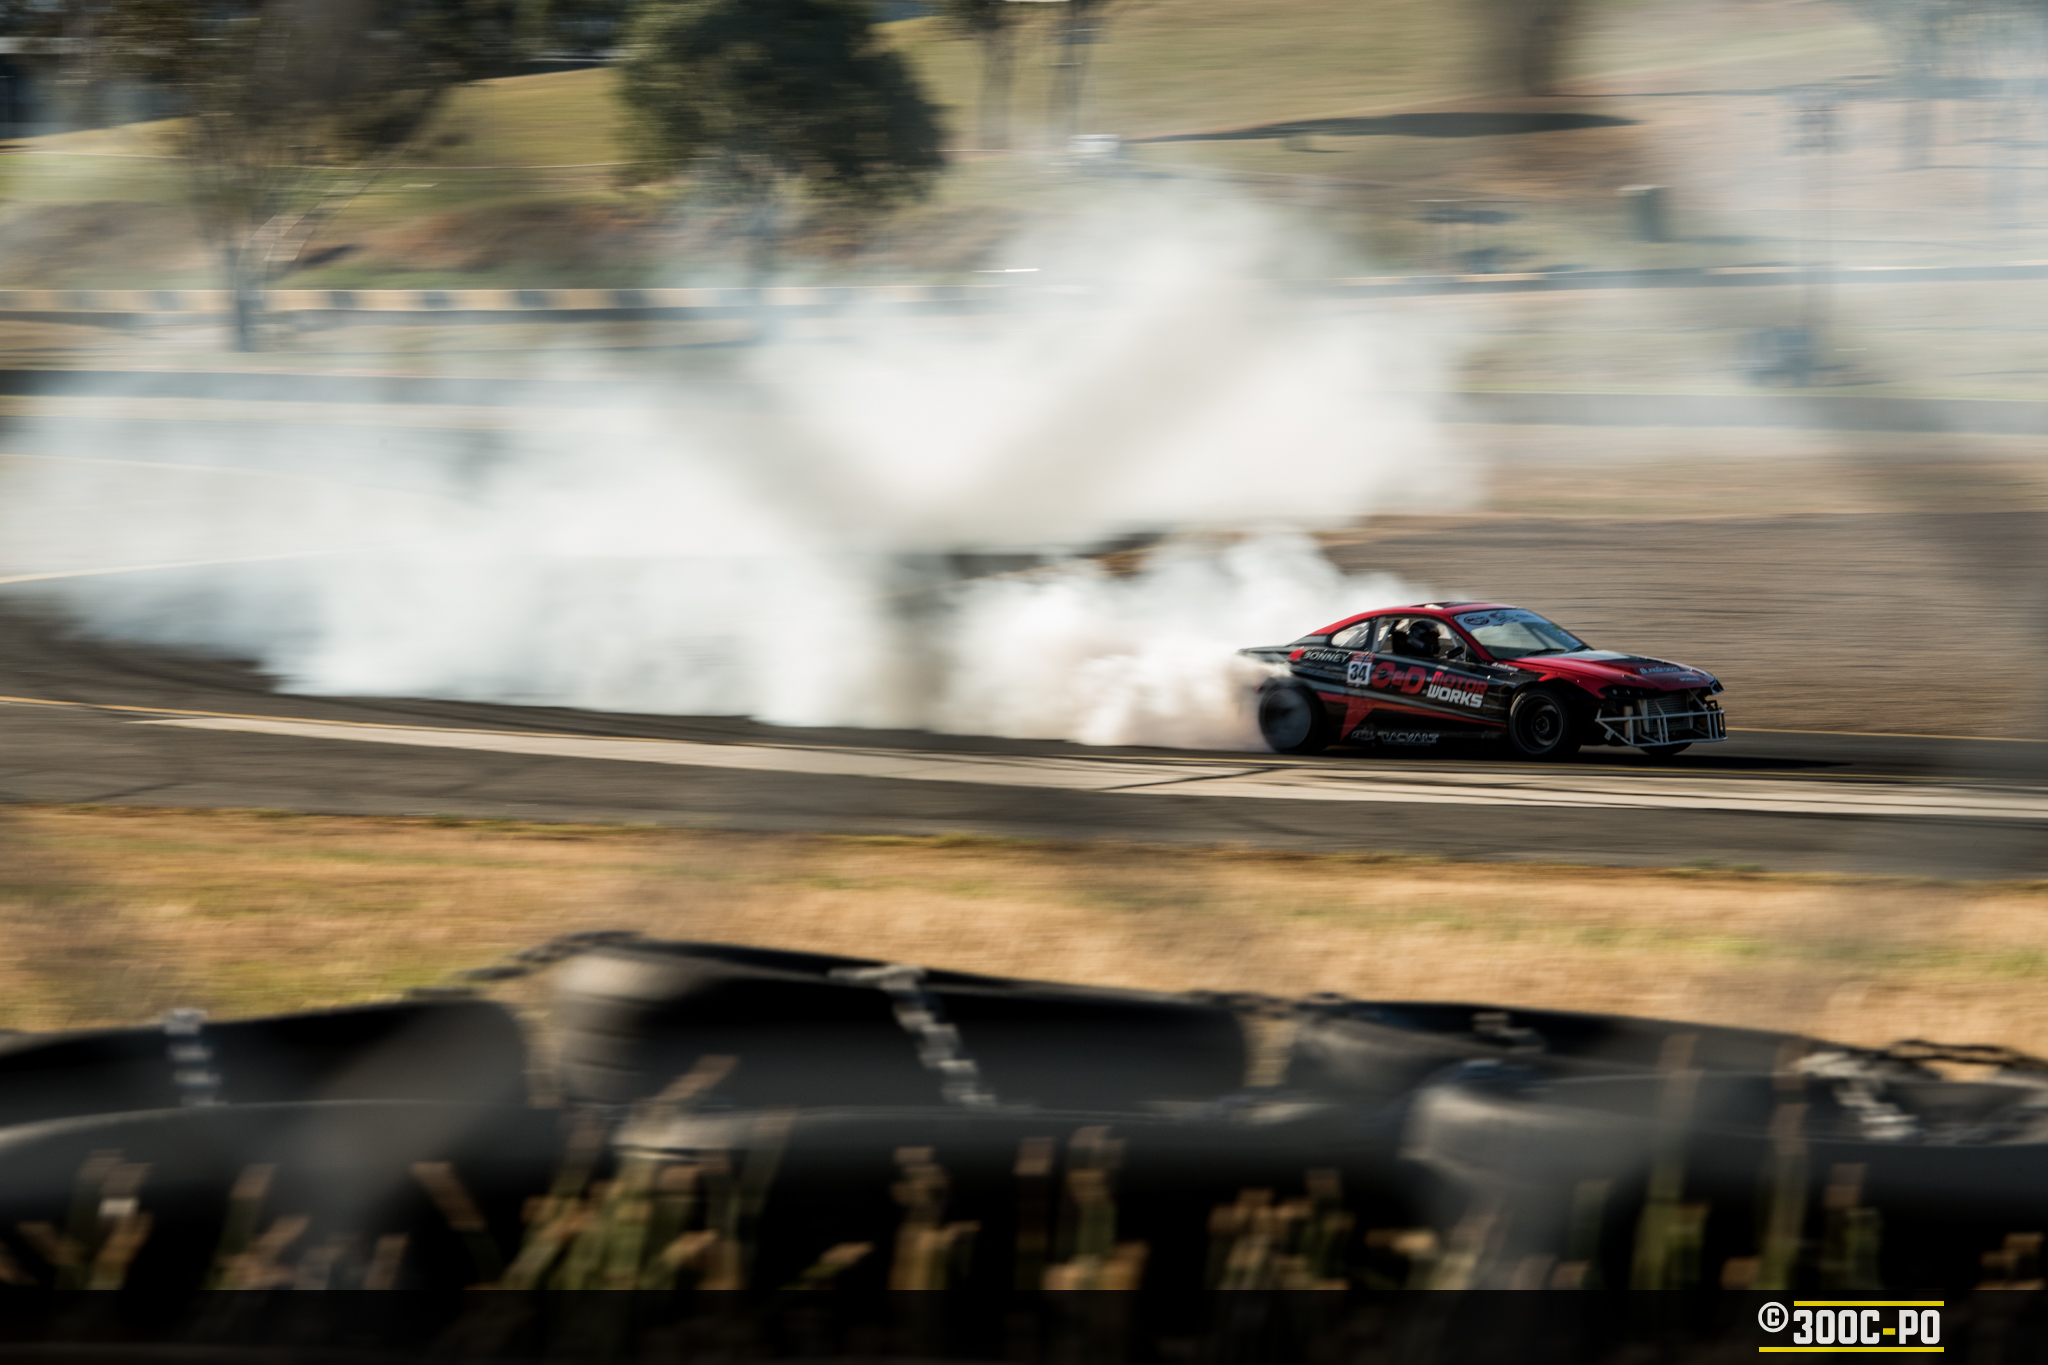 2017-10-12 - WTAC 2017 Test Day 081